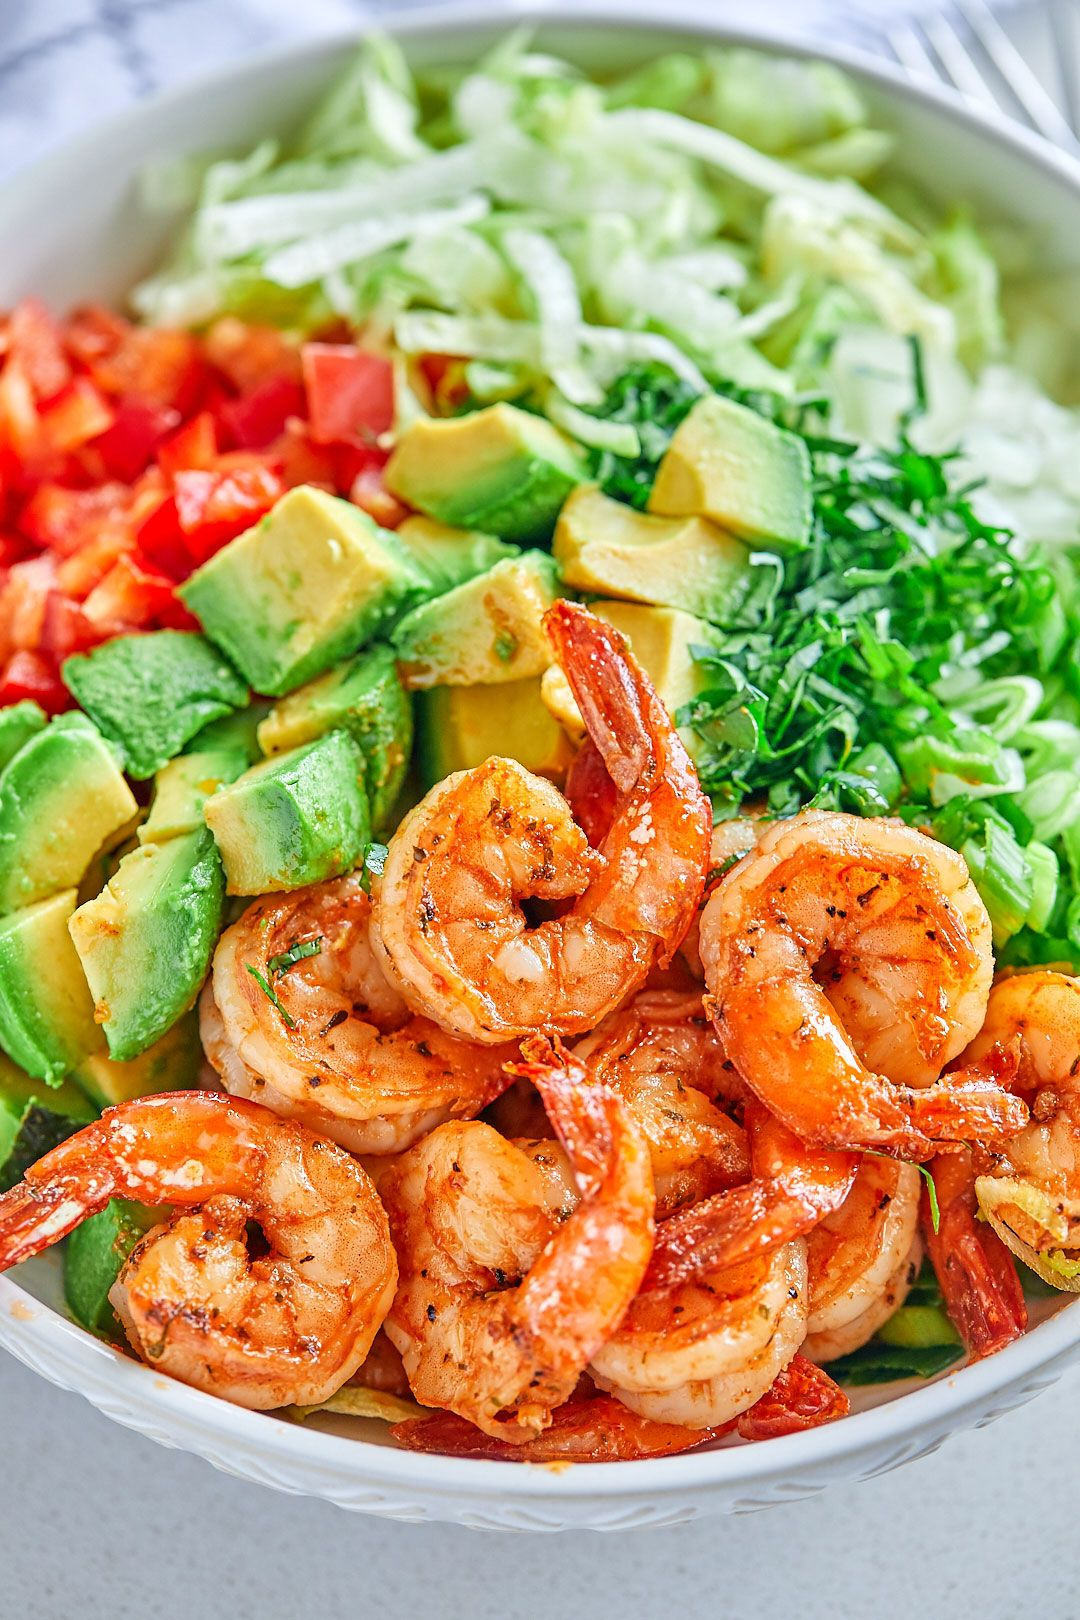 Lettuce Shrimp Avocado Salad - - This chunky shrimp salad with lettuce and avocado is a healthy and